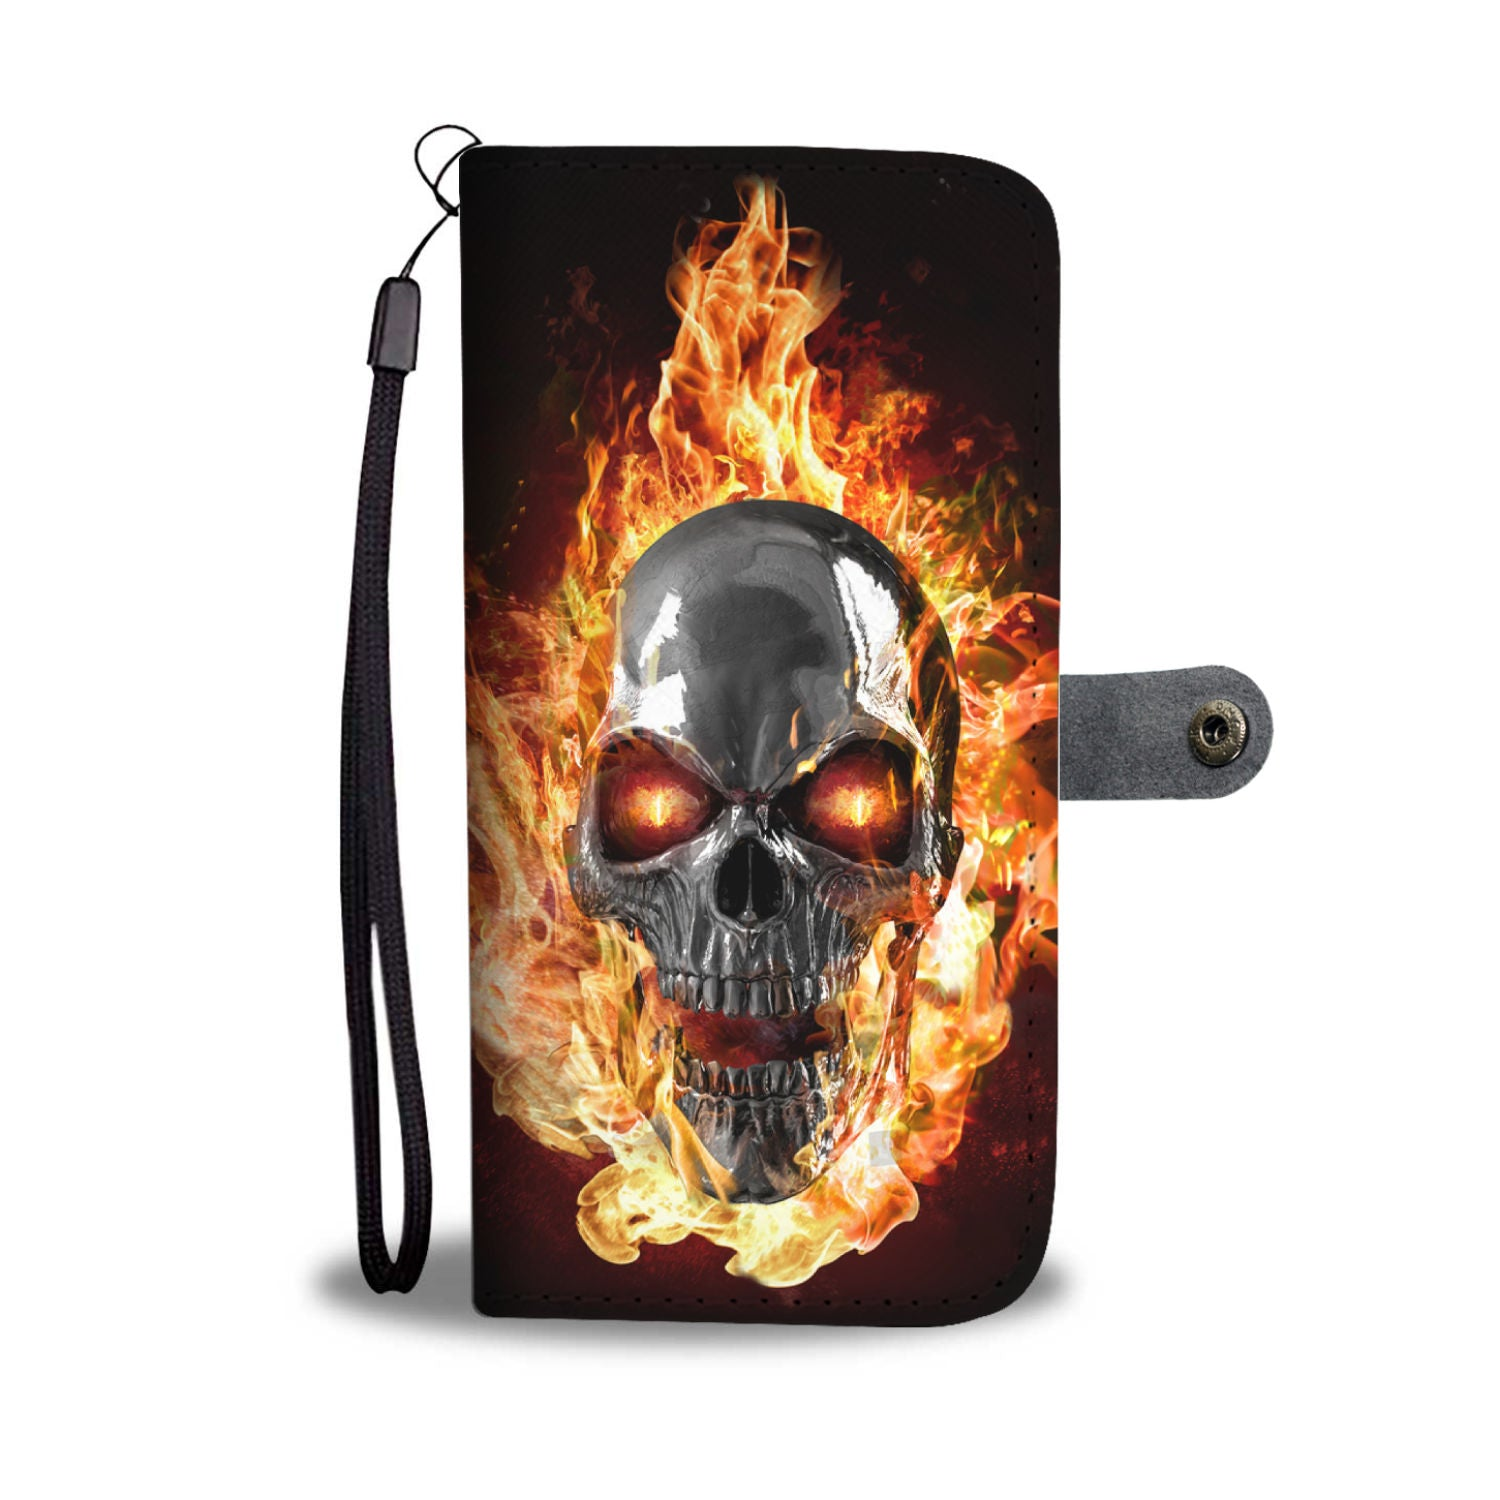 Burning skull - phone case - all phones